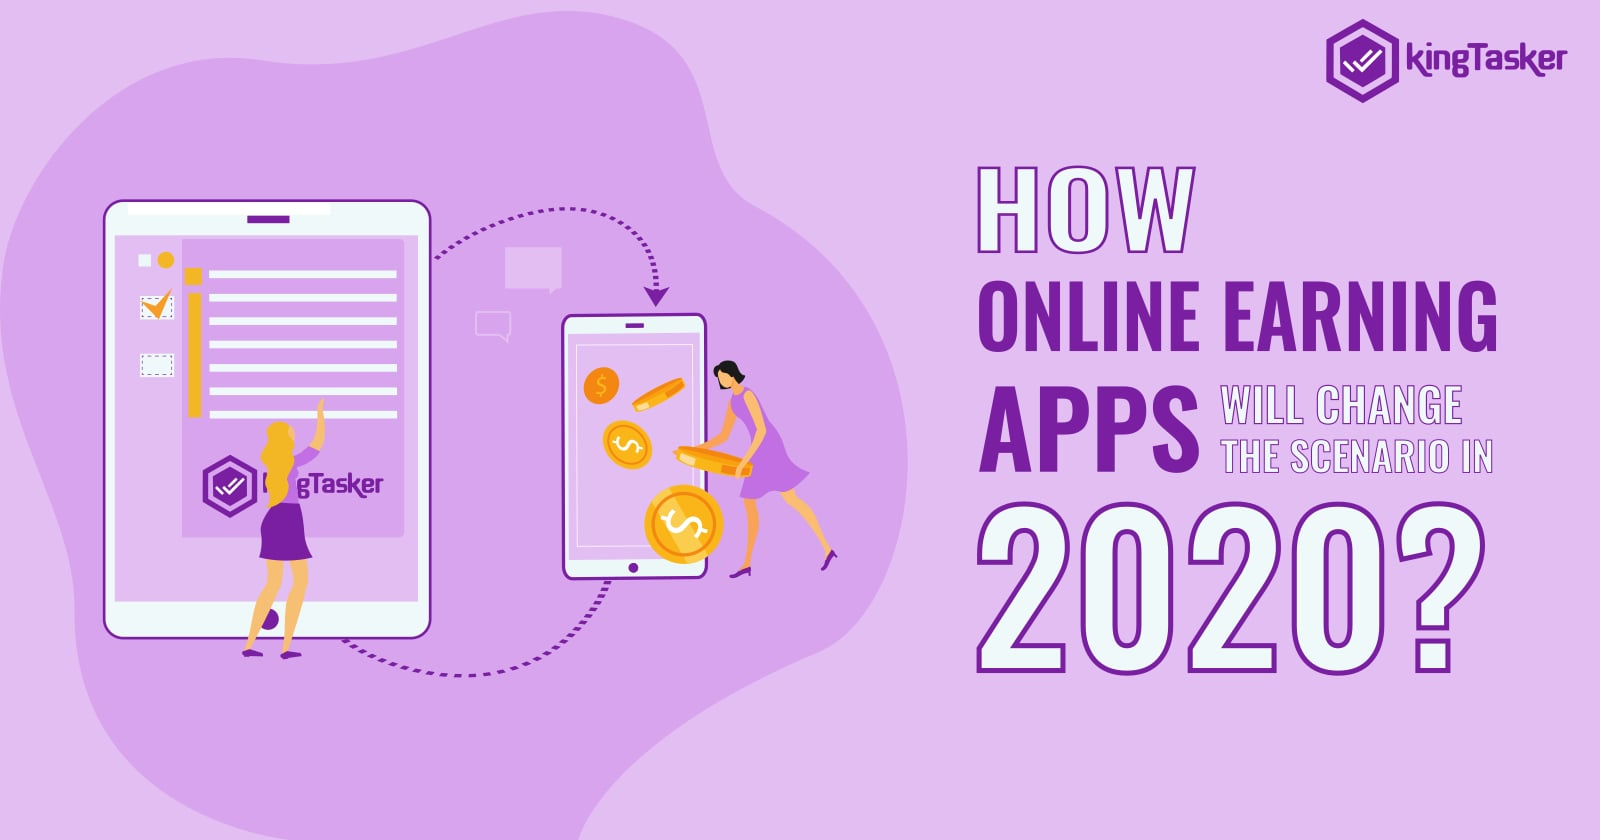 How Online Earning Apps Will Change The Scenario in 2020?